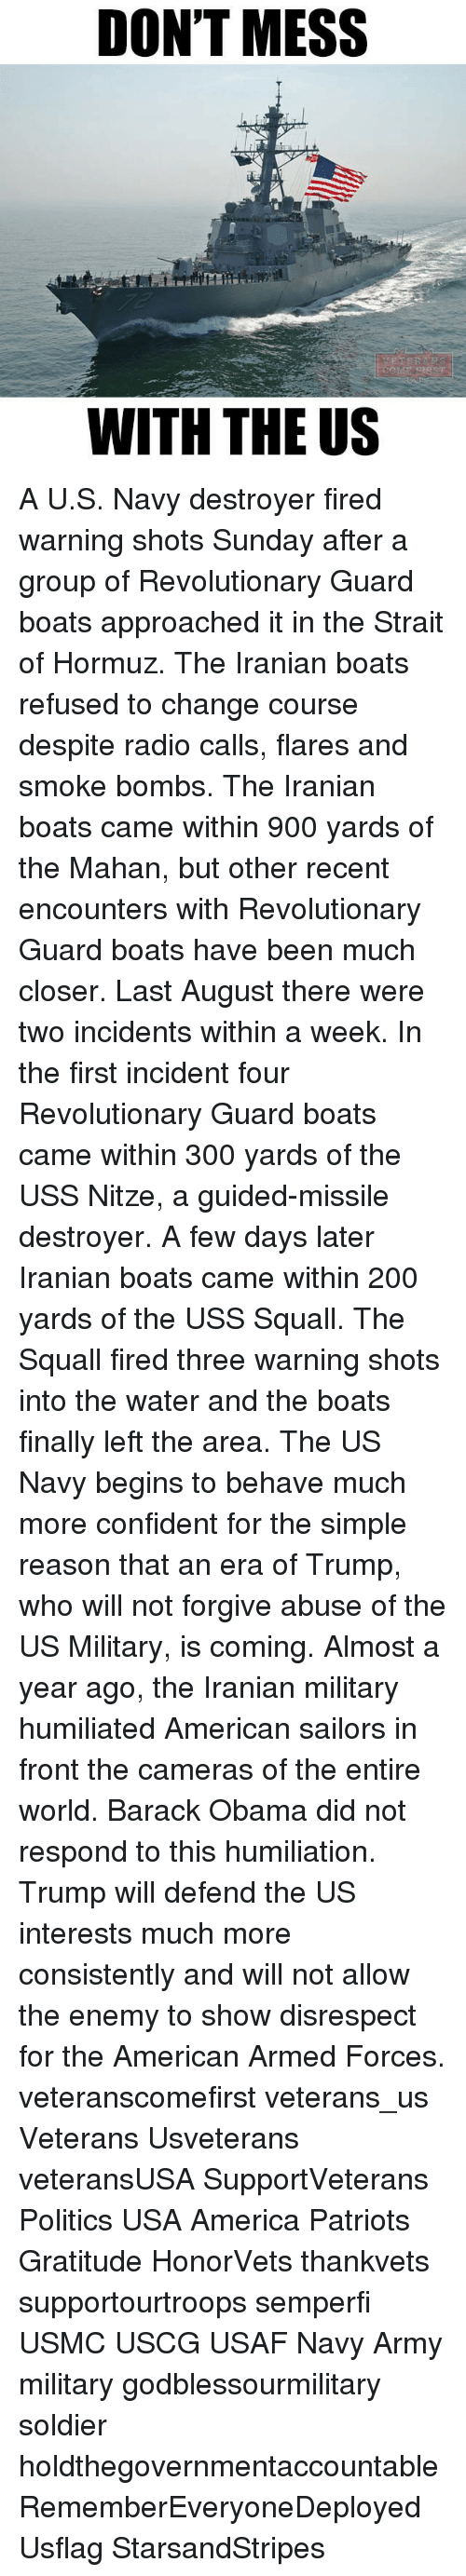 squall: DON'T MESS  WITH THE US A U.S. Navy destroyer fired warning shots Sunday after a group of Revolutionary Guard boats approached it in the Strait of Hormuz. The Iranian boats refused to change course despite radio calls, flares and smoke bombs. The Iranian boats came within 900 yards of the Mahan, but other recent encounters with Revolutionary Guard boats have been much closer. Last August there were two incidents within a week. In the first incident four Revolutionary Guard boats came within 300 yards of the USS Nitze, a guided-missile destroyer. A few days later Iranian boats came within 200 yards of the USS Squall. The Squall fired three warning shots into the water and the boats finally left the area. The US Navy begins to behave much more confident for the simple reason that an era of Trump, who will not forgive abuse of the US Military, is coming. Almost a year ago, the Iranian military humiliated American sailors in front the cameras of the entire world. Barack Obama did not respond to this humiliation. Trump will defend the US interests much more consistently and will not allow the enemy to show disrespect for the American Armed Forces. veteranscomefirst veterans_us Veterans Usveterans veteransUSA SupportVeterans Politics USA America Patriots Gratitude HonorVets thankvets supportourtroops semperfi USMC USCG USAF Navy Army military godblessourmilitary soldier holdthegovernmentaccountable RememberEveryoneDeployed Usflag StarsandStripes